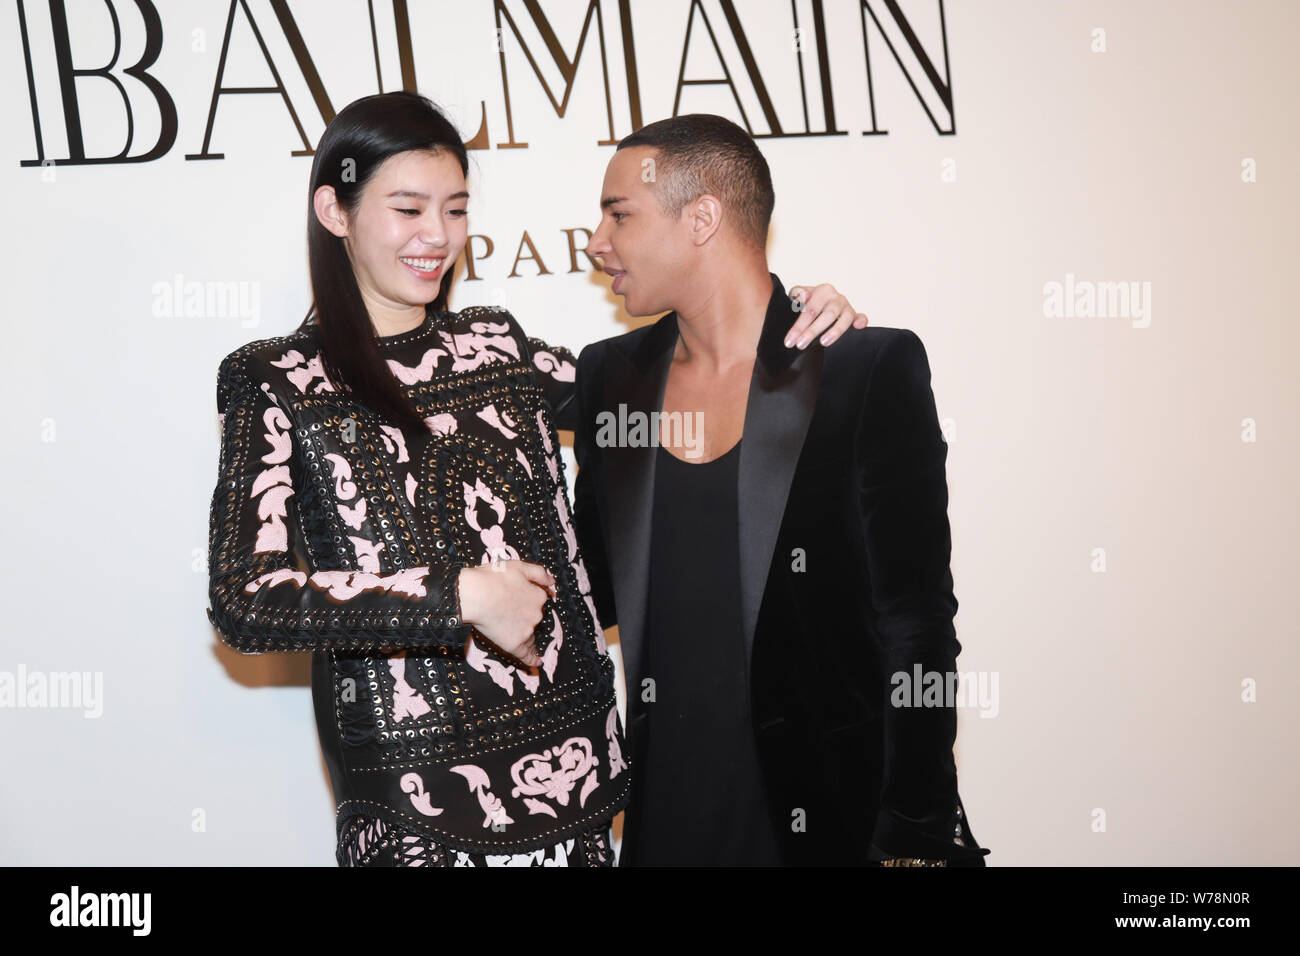 French Fashion Designer Olivier Rousteing Right The Creative Director Of Balmain And Chinese Model Xi Mengyao Better Known As Ming Xi Attend The Stock Photo Alamy